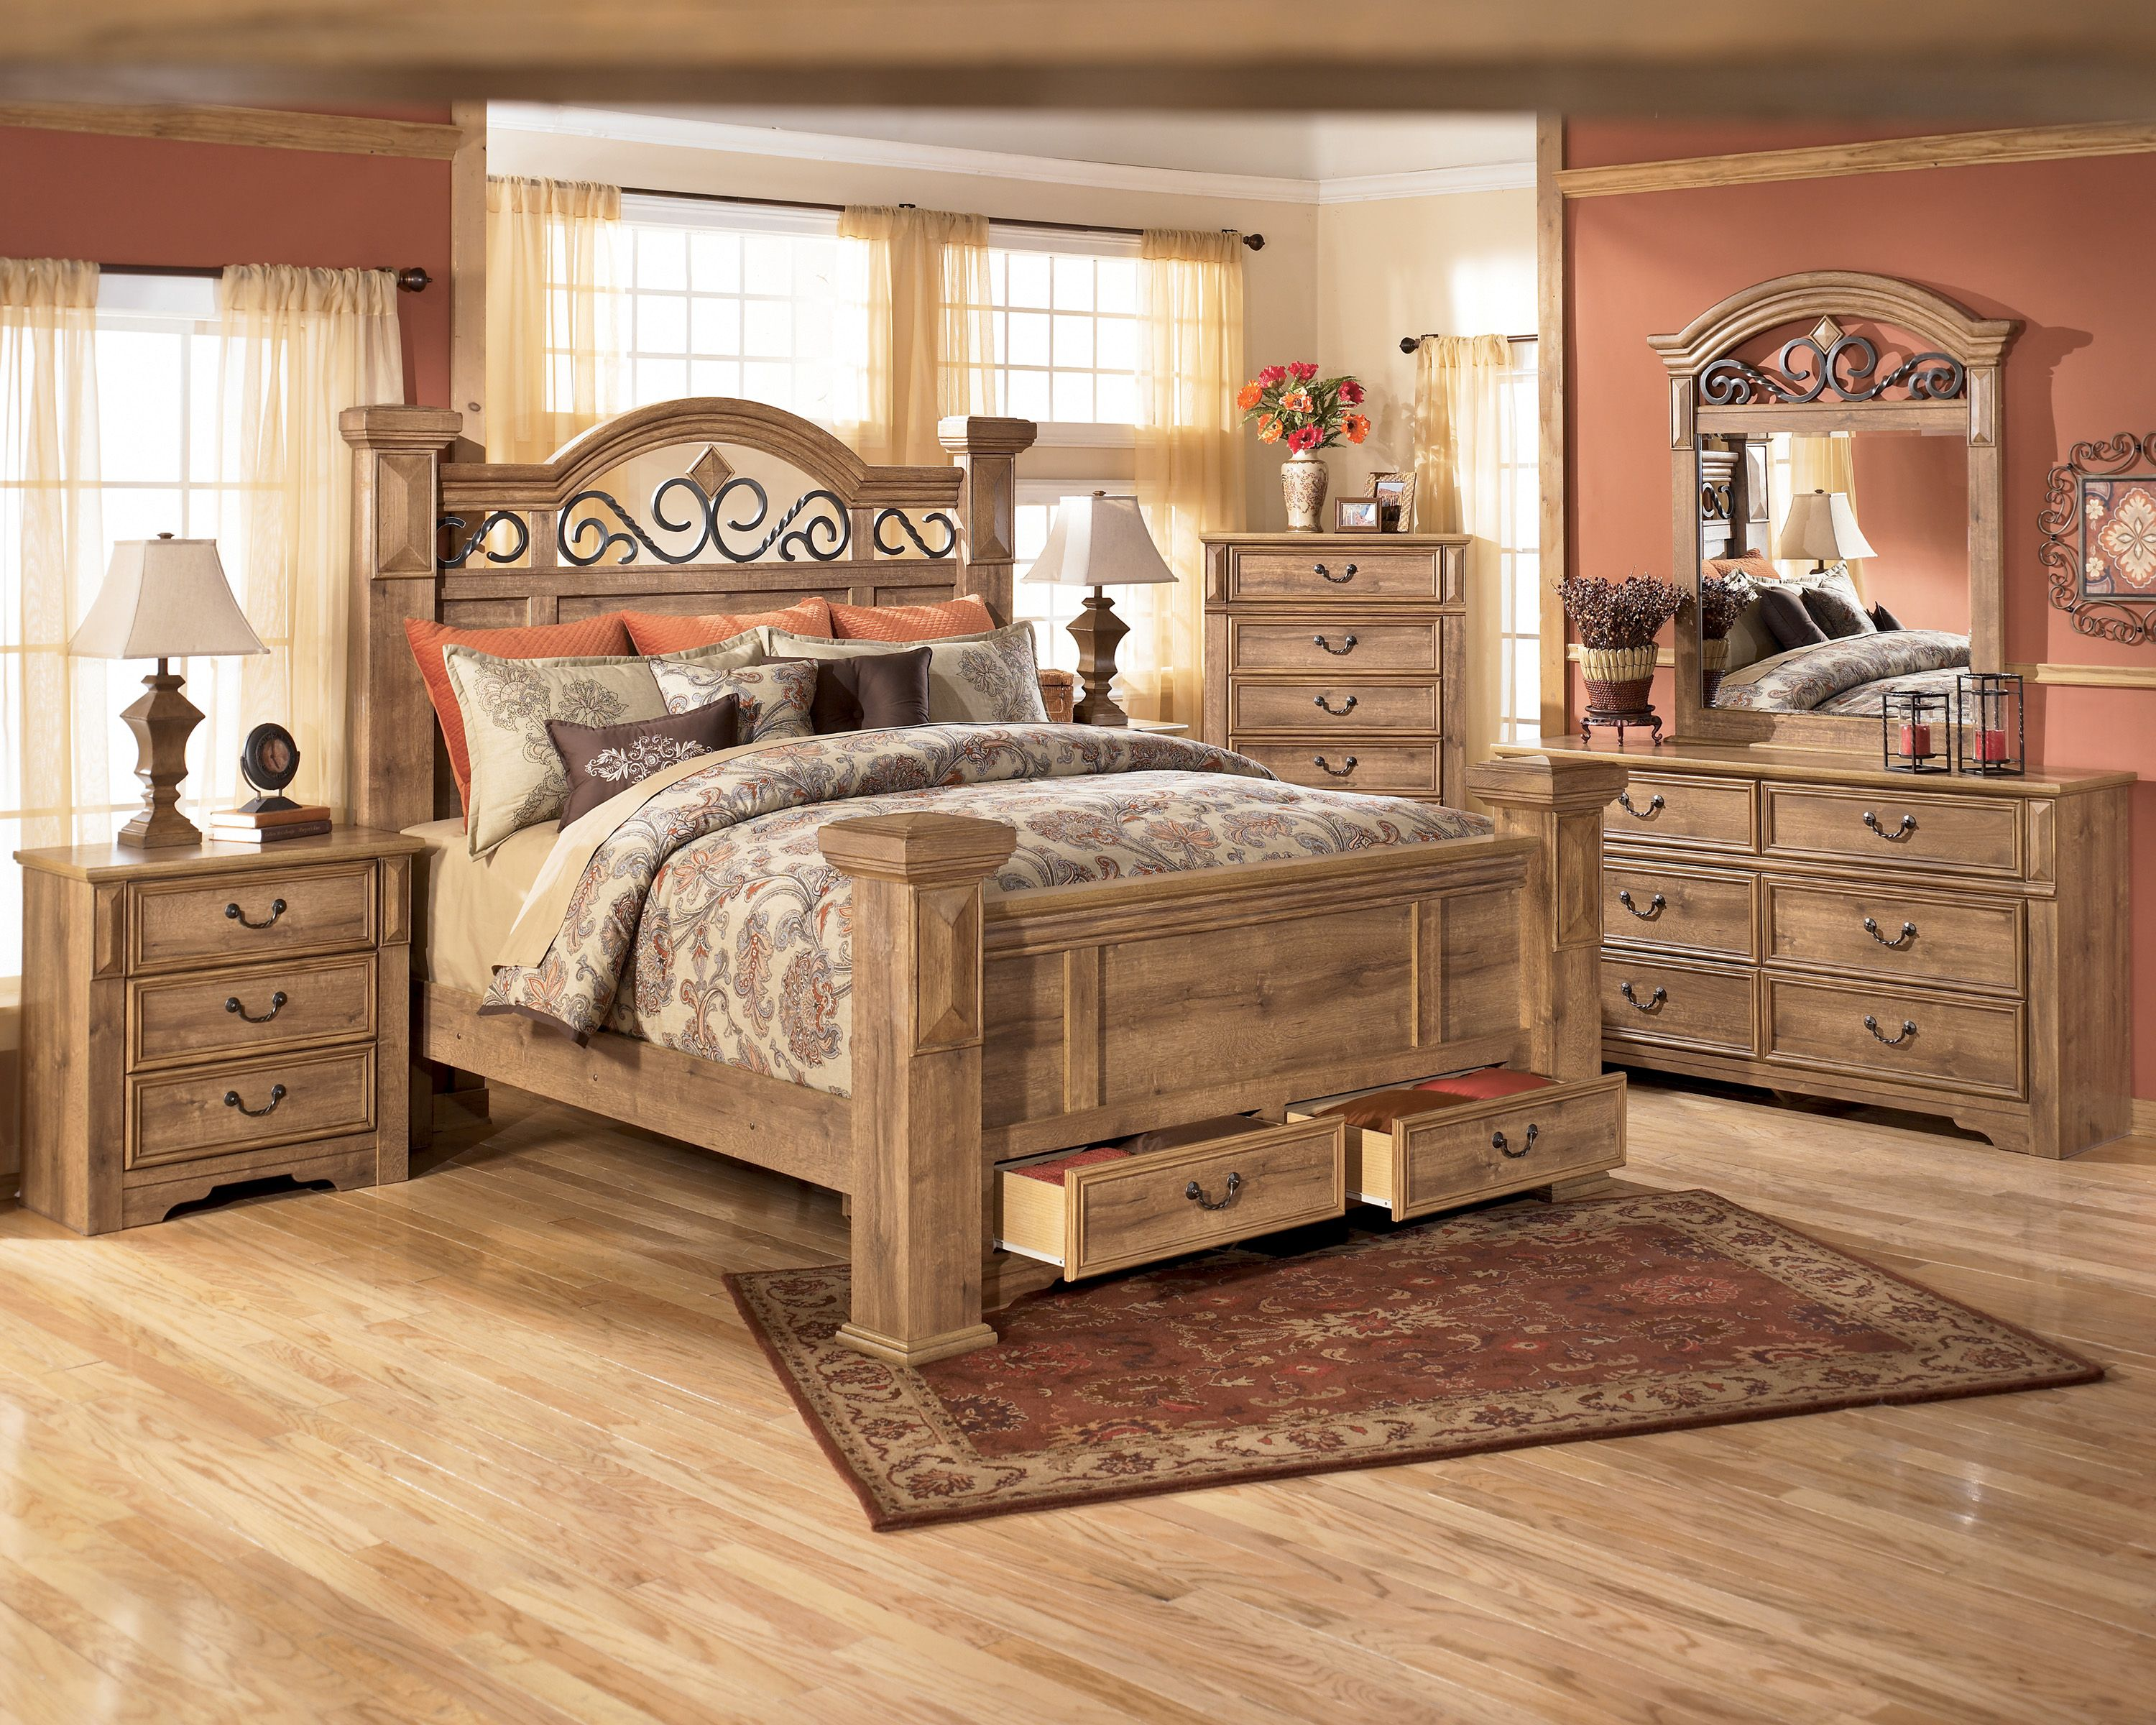 Best King Size Bed Set Rosalinda. Best 25  Queen bedroom sets ideas on Pinterest